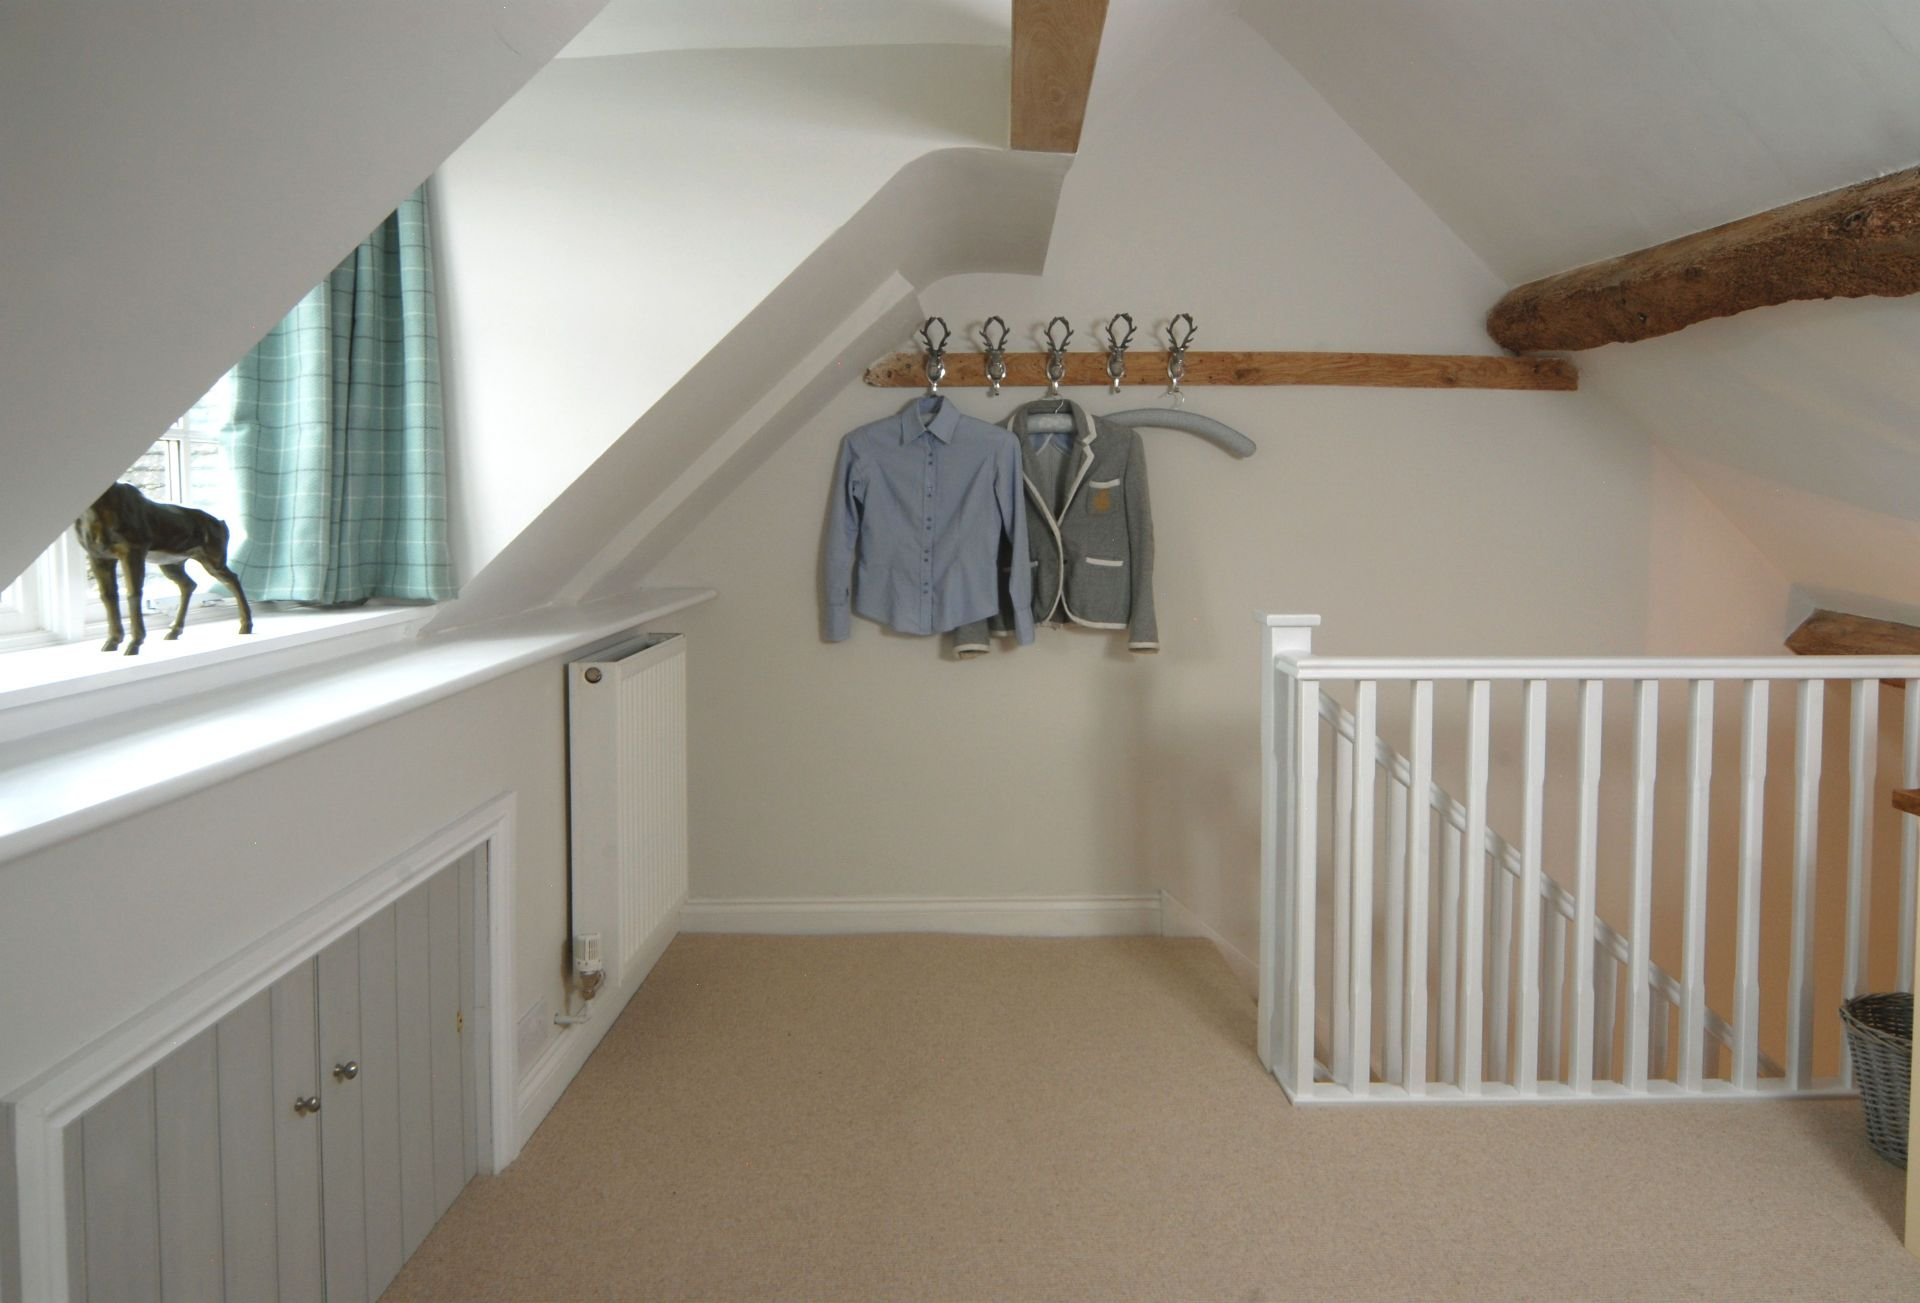 Second floor: The generous galleried dressing area with hanging space